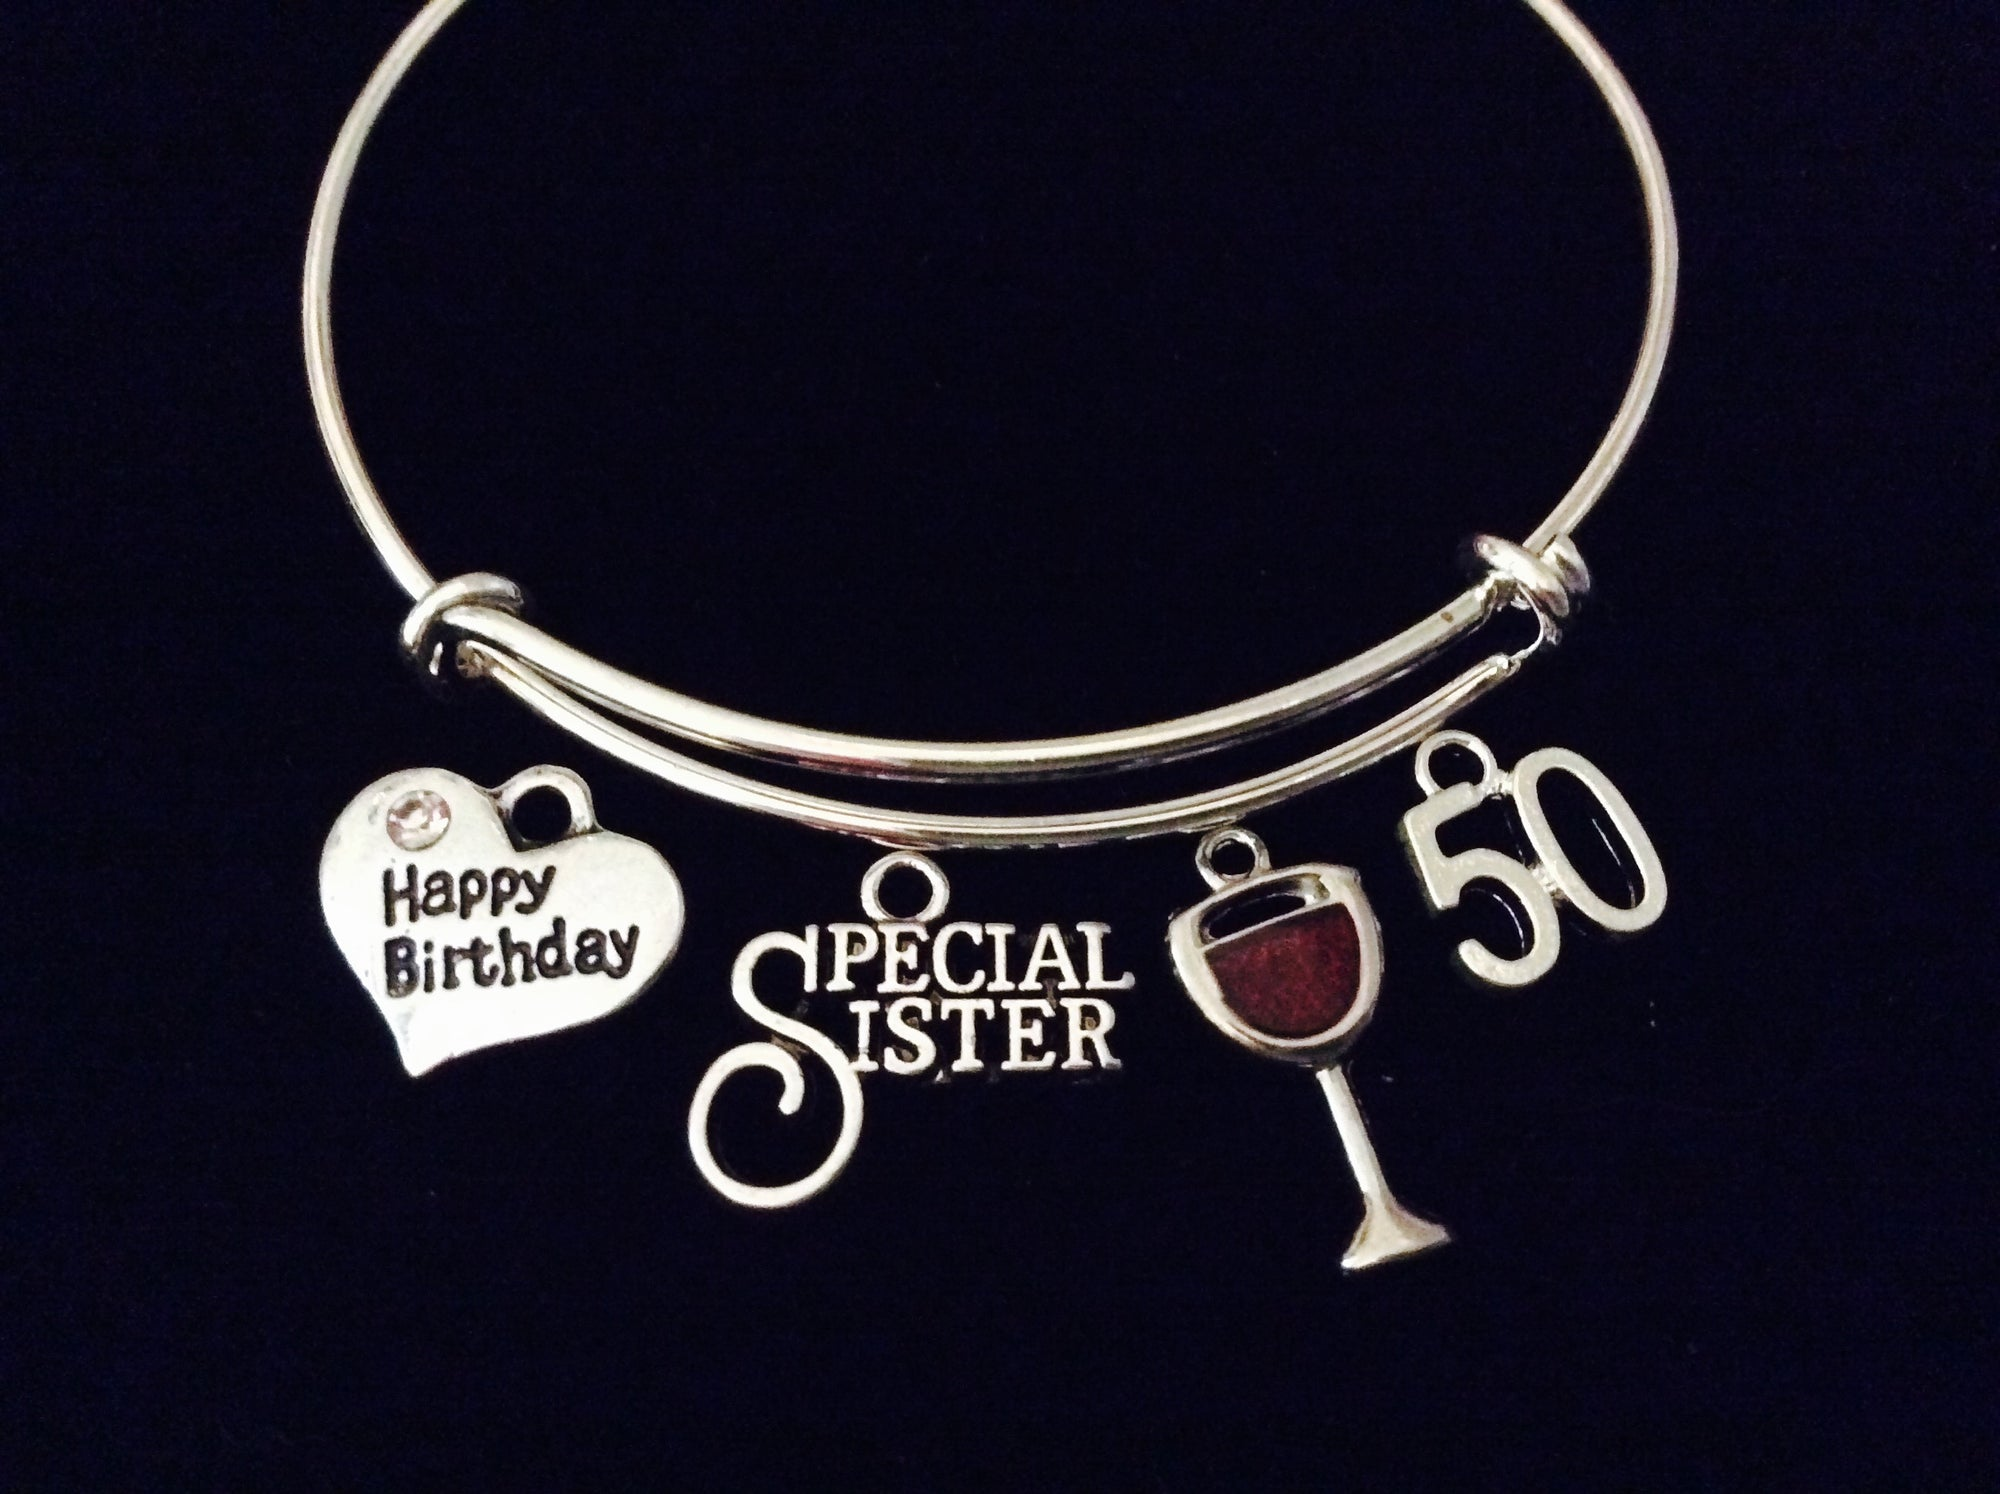 Happy 50th Birthday Special Sister Adjustable Bracelet Expandable Charm Bangle Gift